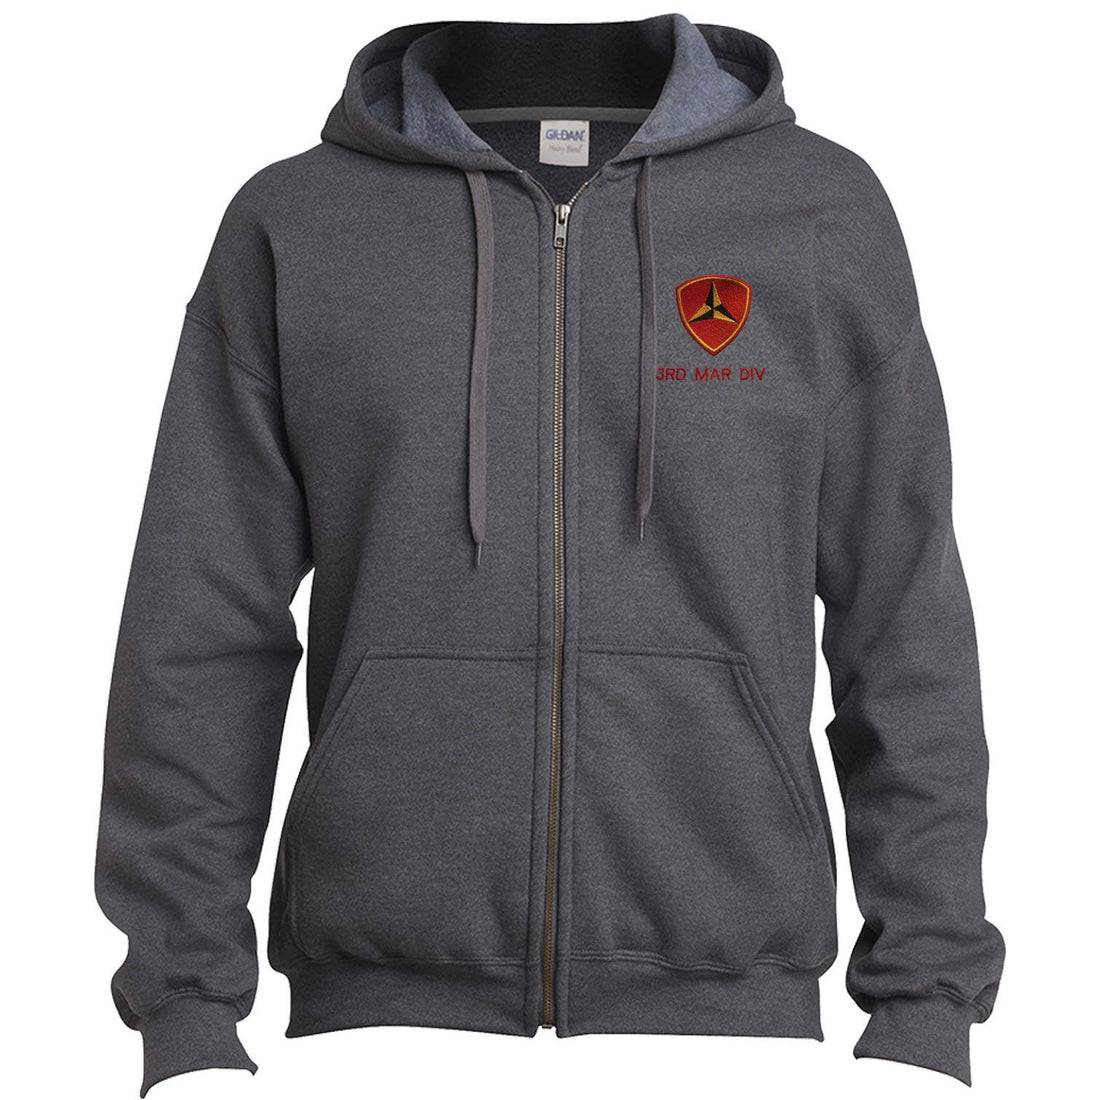 Embroidered 3rd Marine Divison Heavy Blend Vintage Full-Zip Hoodie (MULTIPLE COLORS)